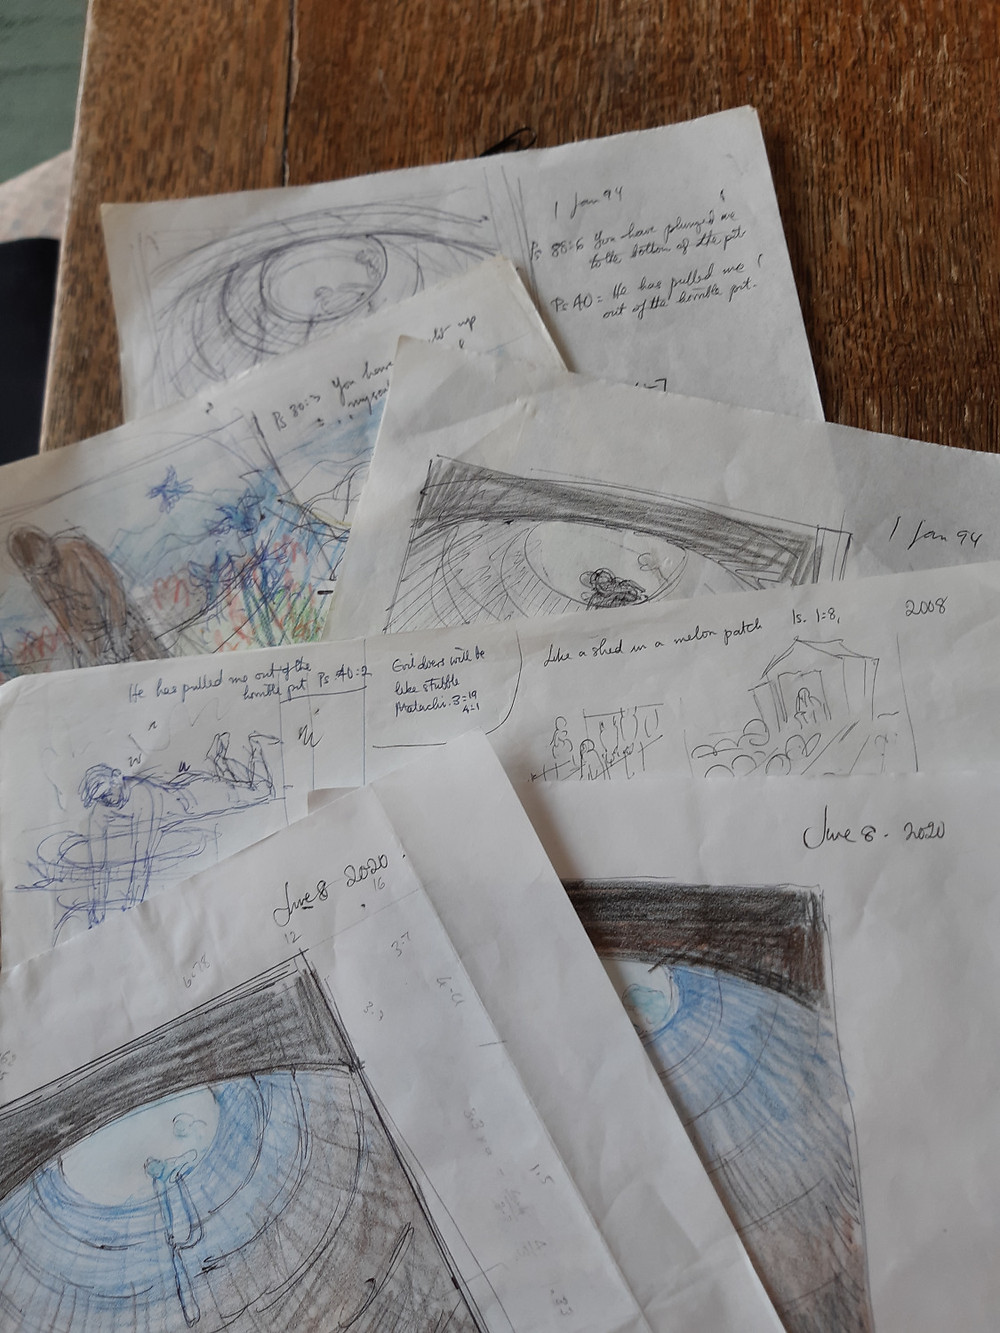 A pile of peter's sketches, no real details are obvious but some are in colour or in black and white using biro